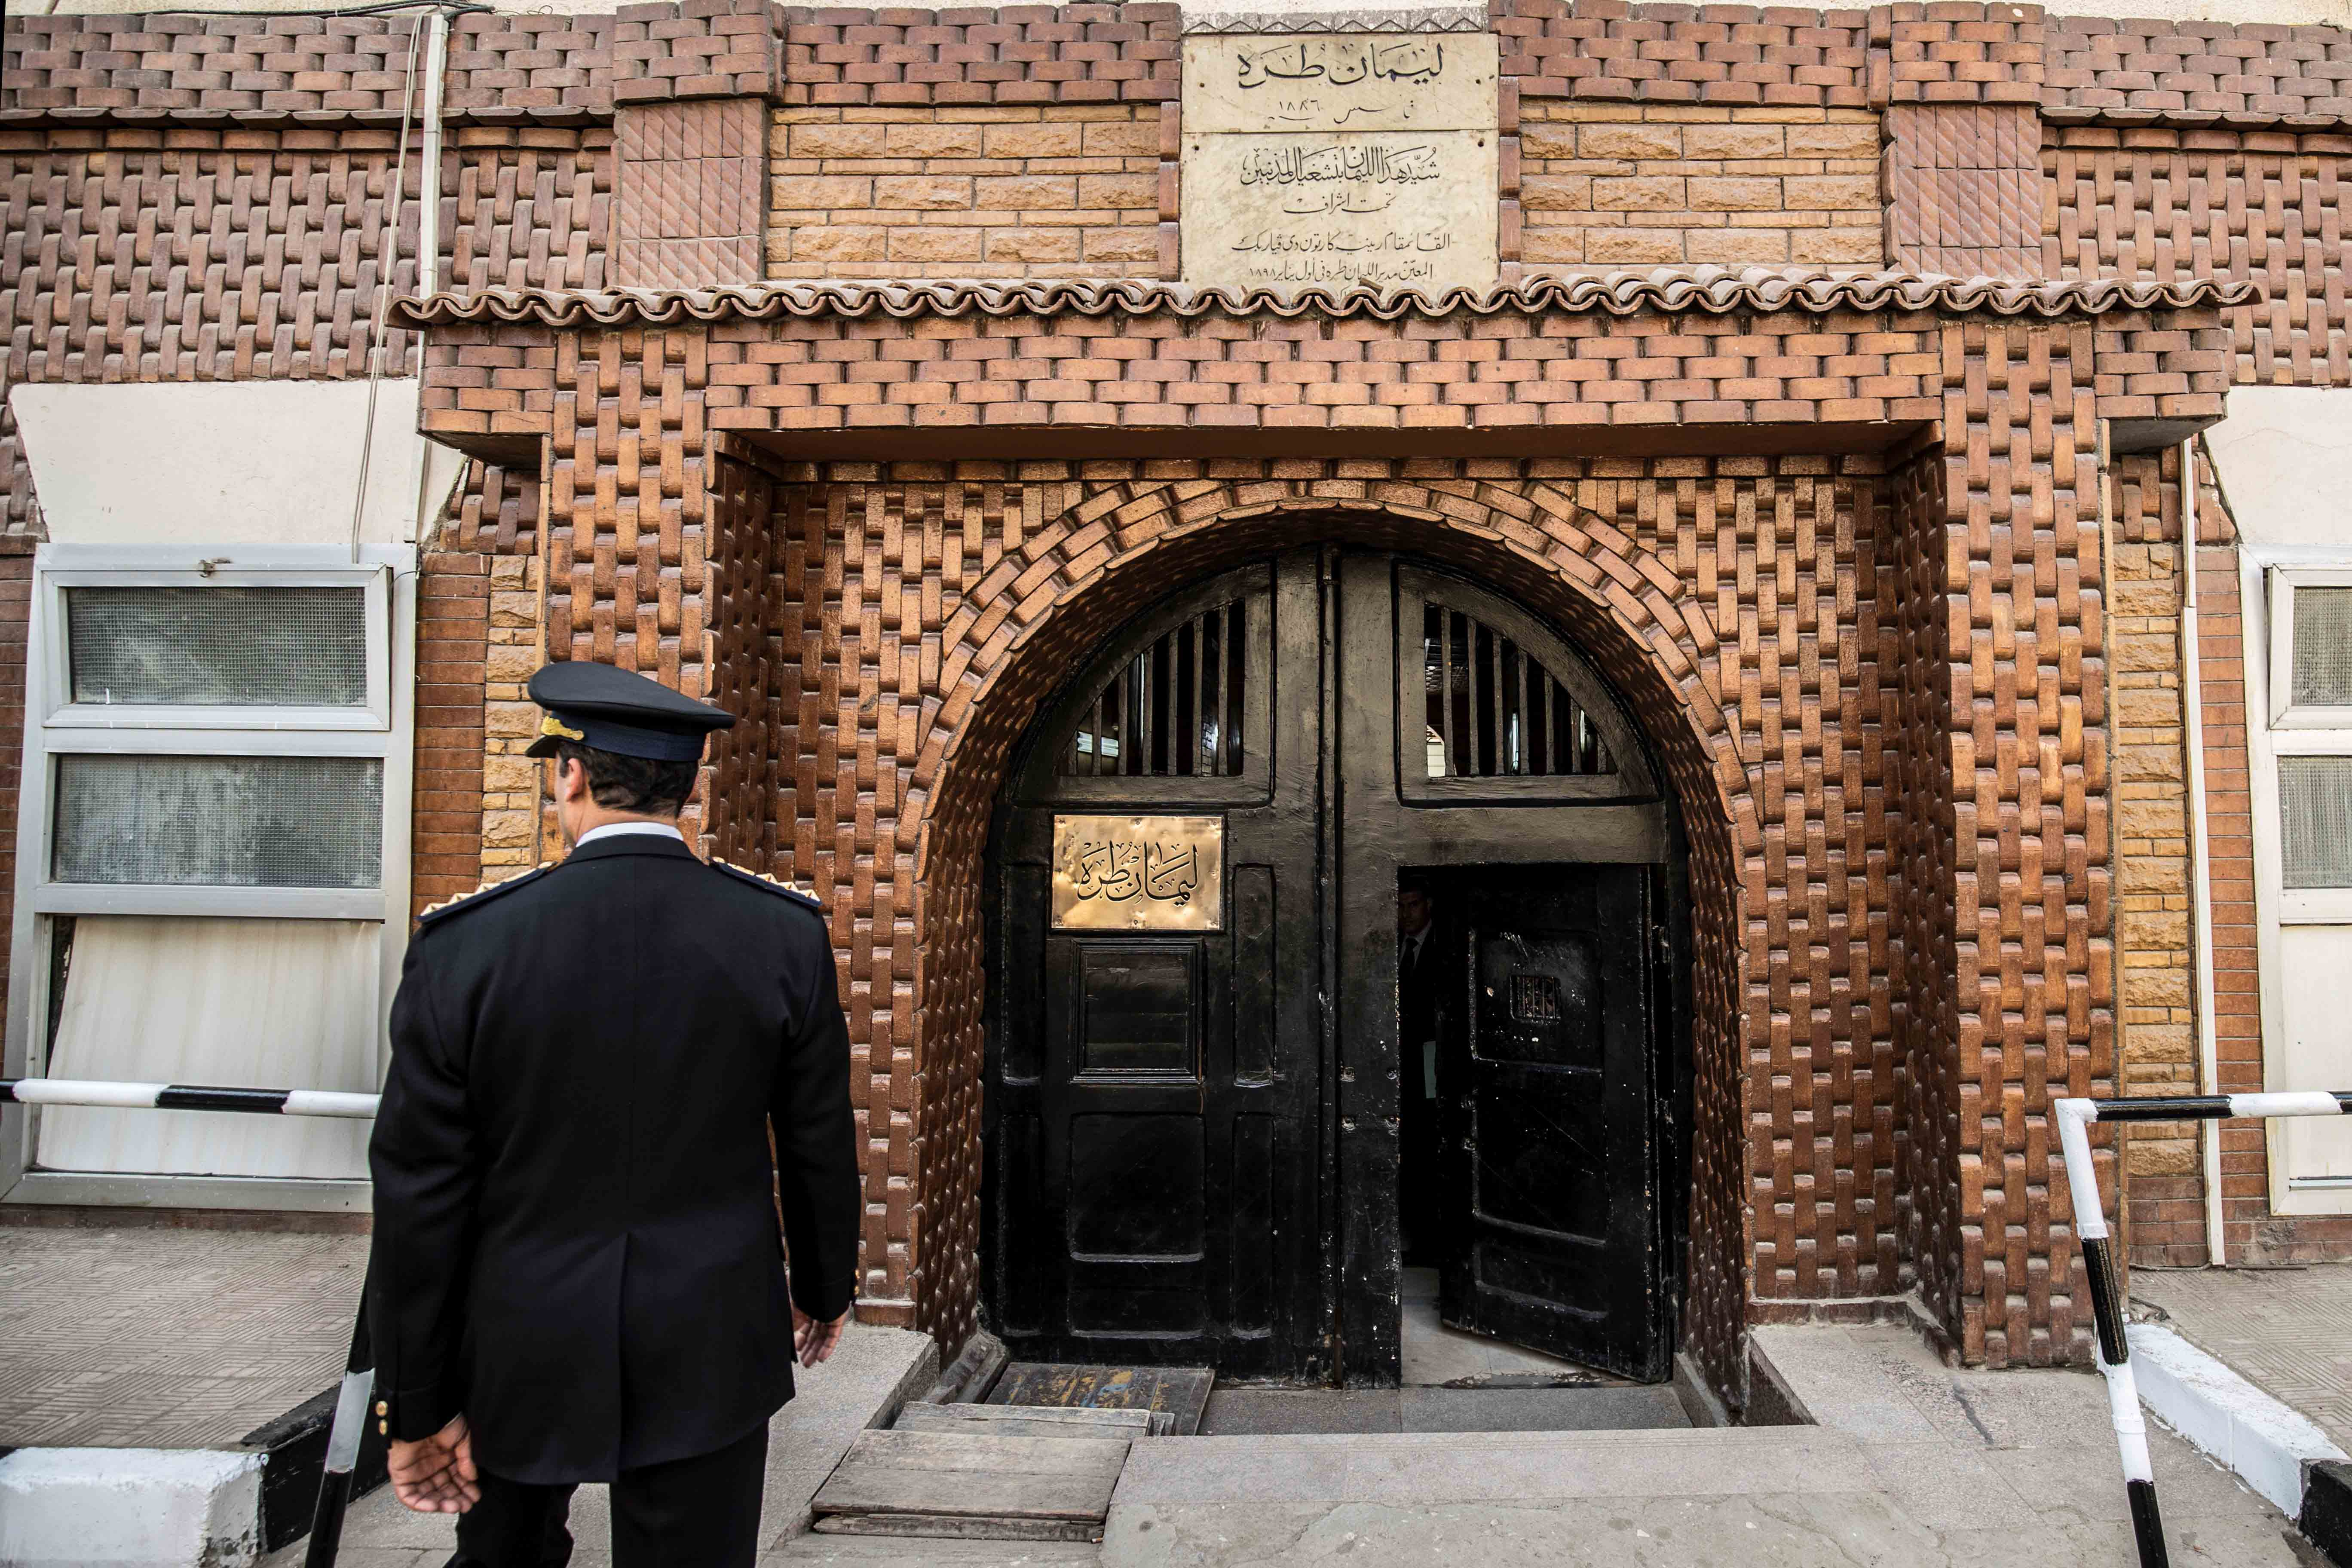 Egypt Apparent Covid 19 Outbreaks In Prisons Human Rights Watch